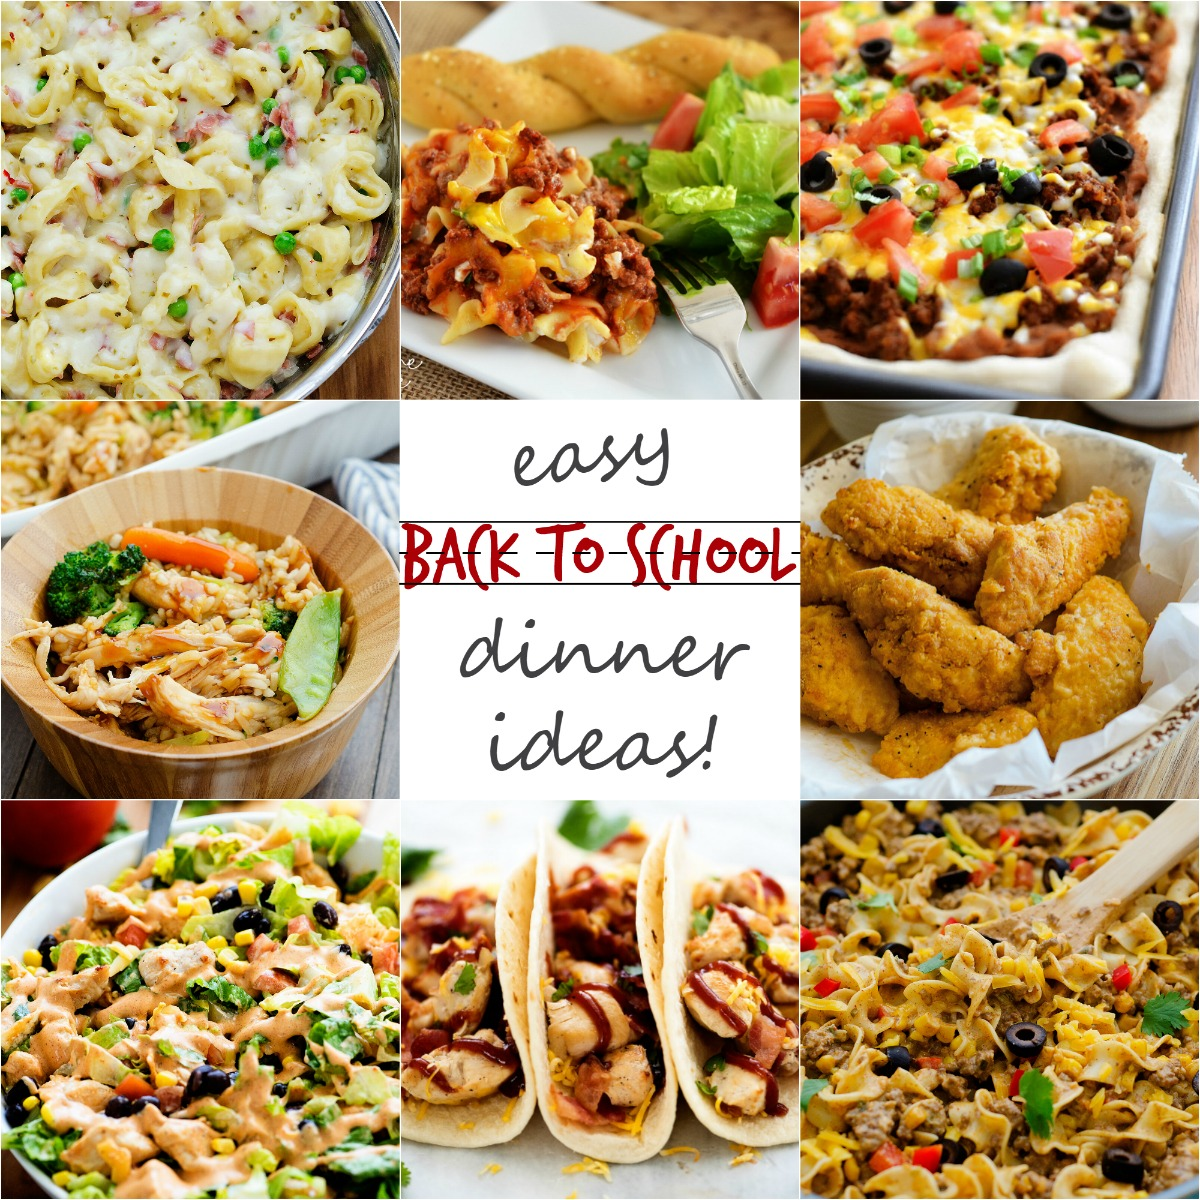 Tons of easy, 30-minute meal ideas for back-to-school busy weeknights!